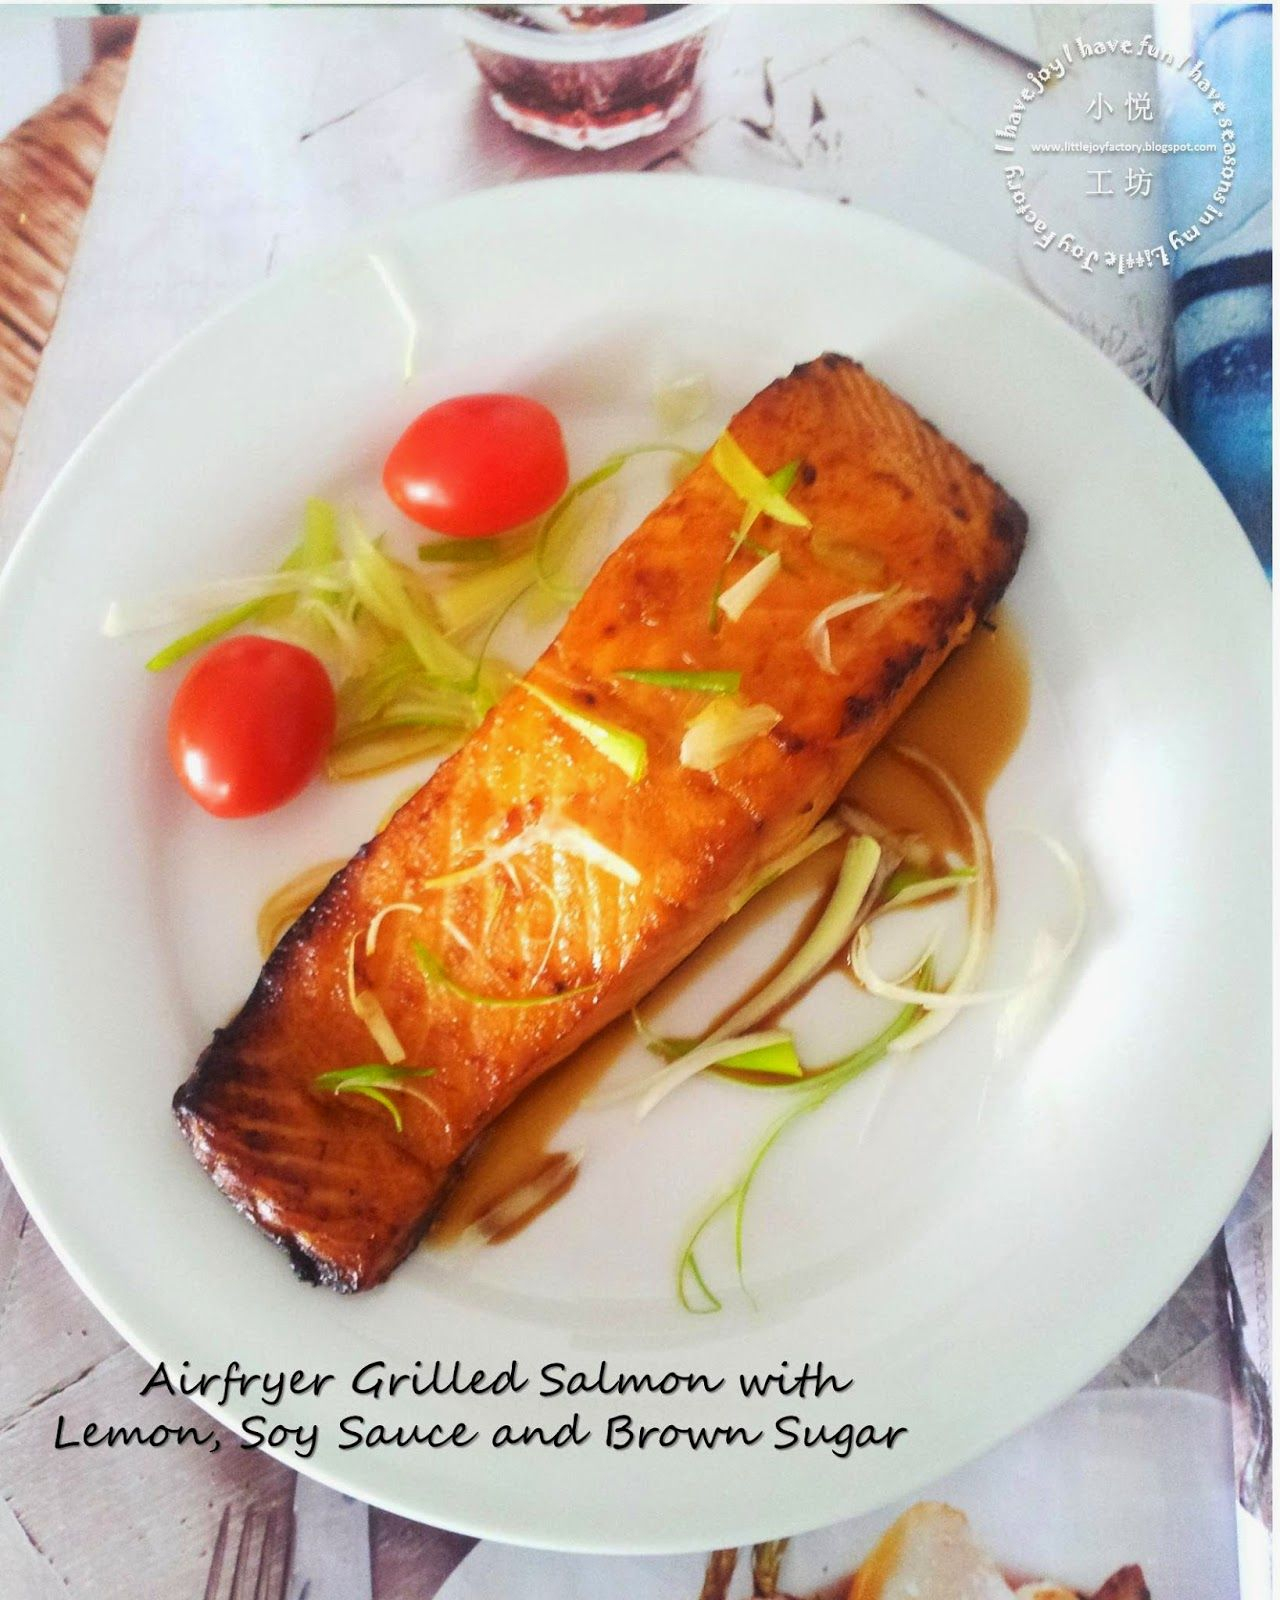 50 Air Fryer Recipes Grilled Salmon Salmon Recipes Air Fryer